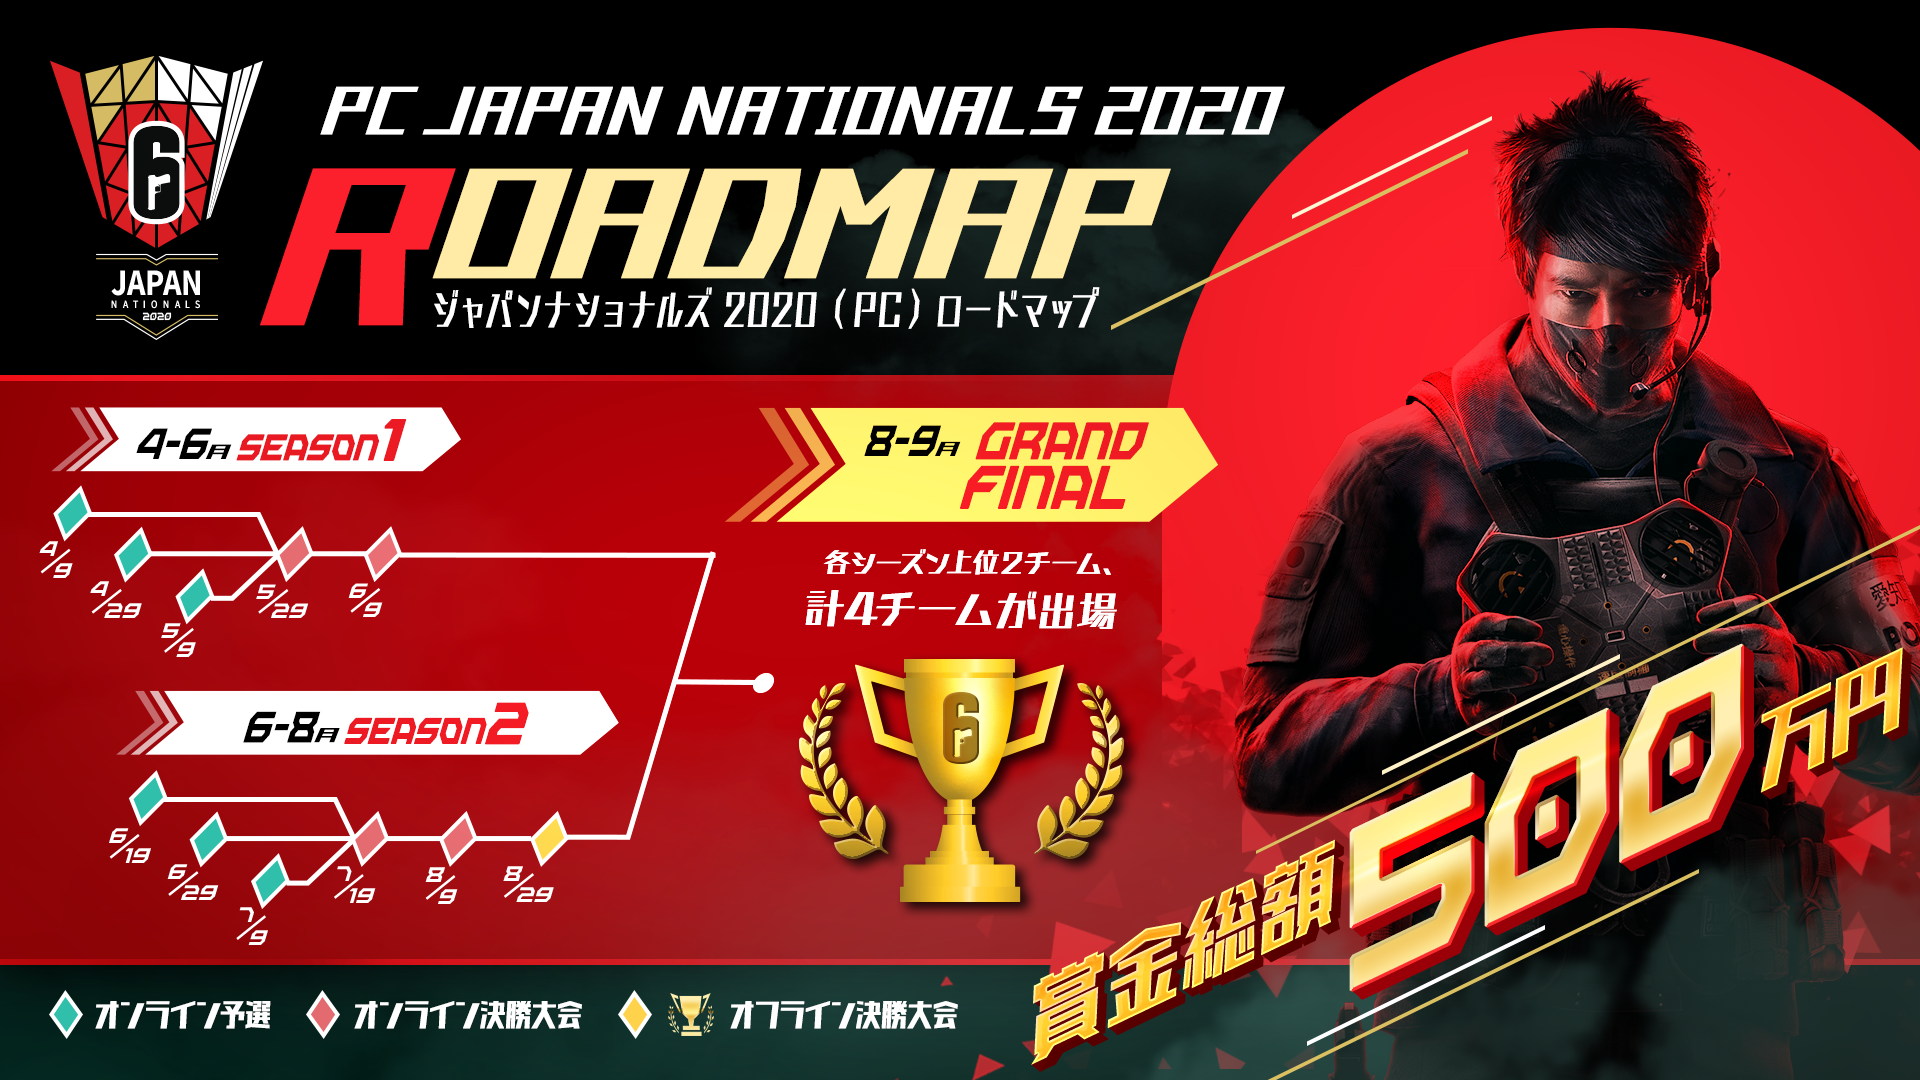 Official roadmap of Japan Nationals 2020